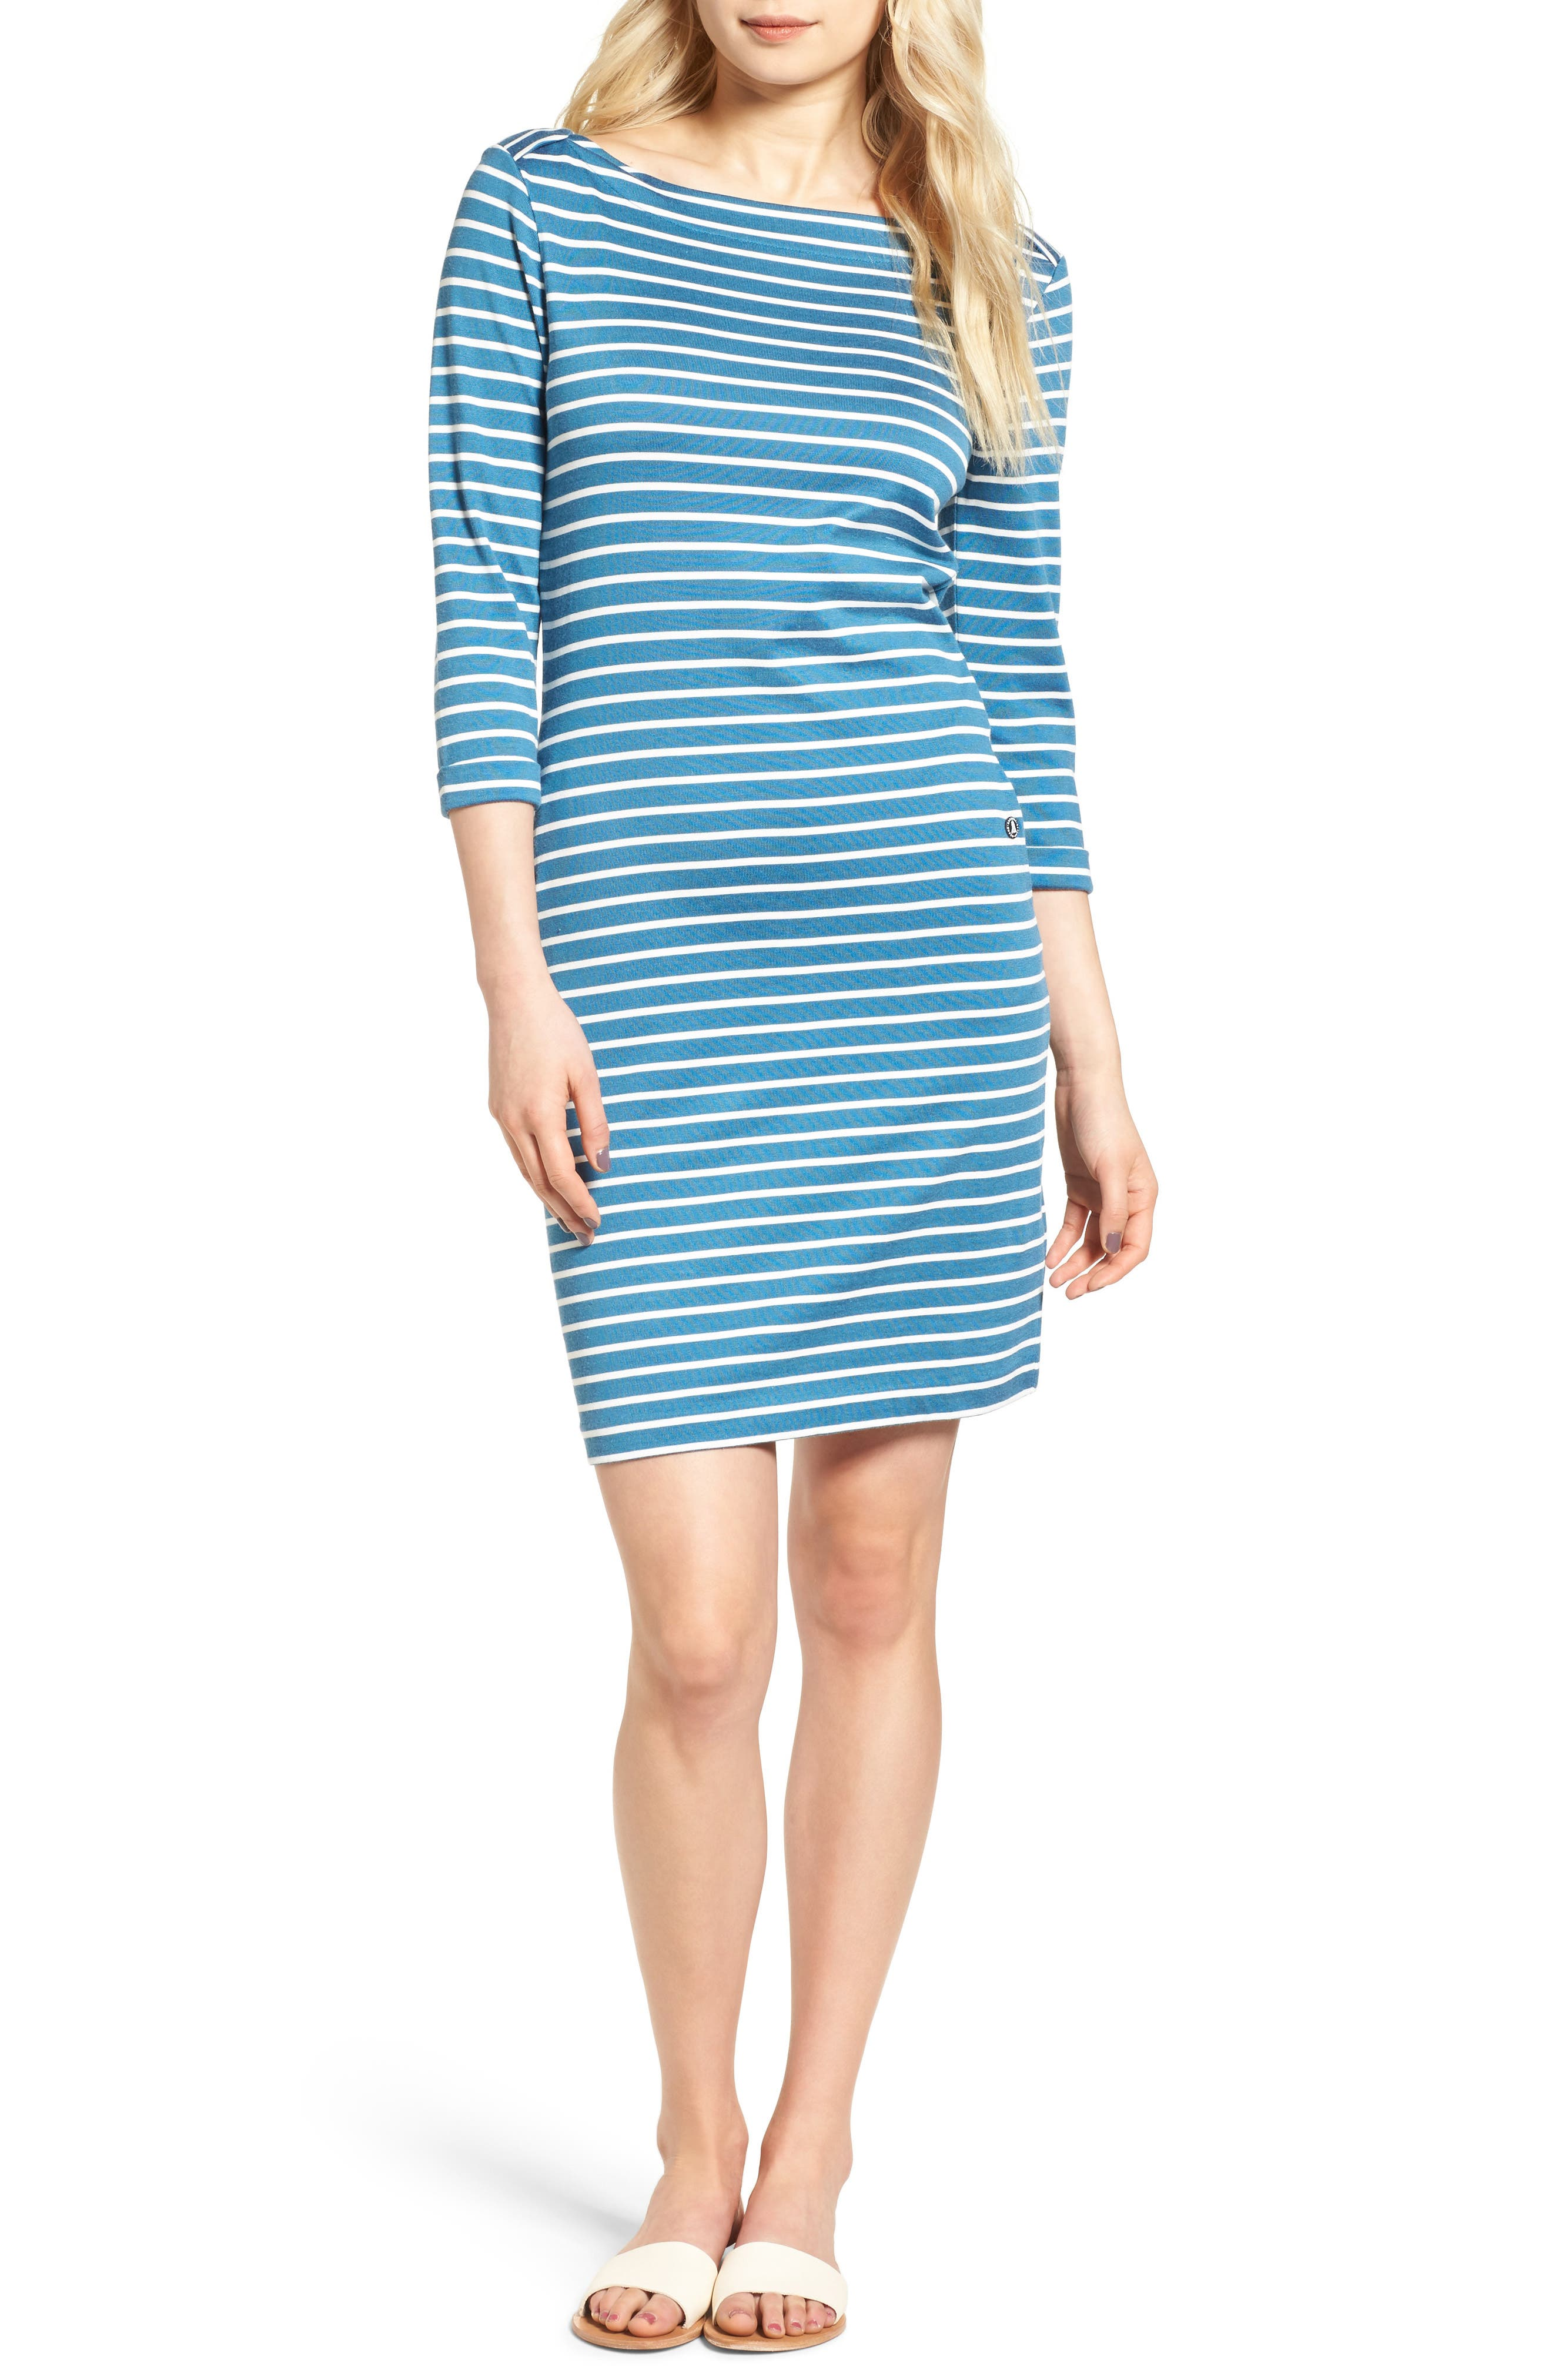 Alternate Image 1 Selected - Barbour Wharf Stripe Jersey Dress